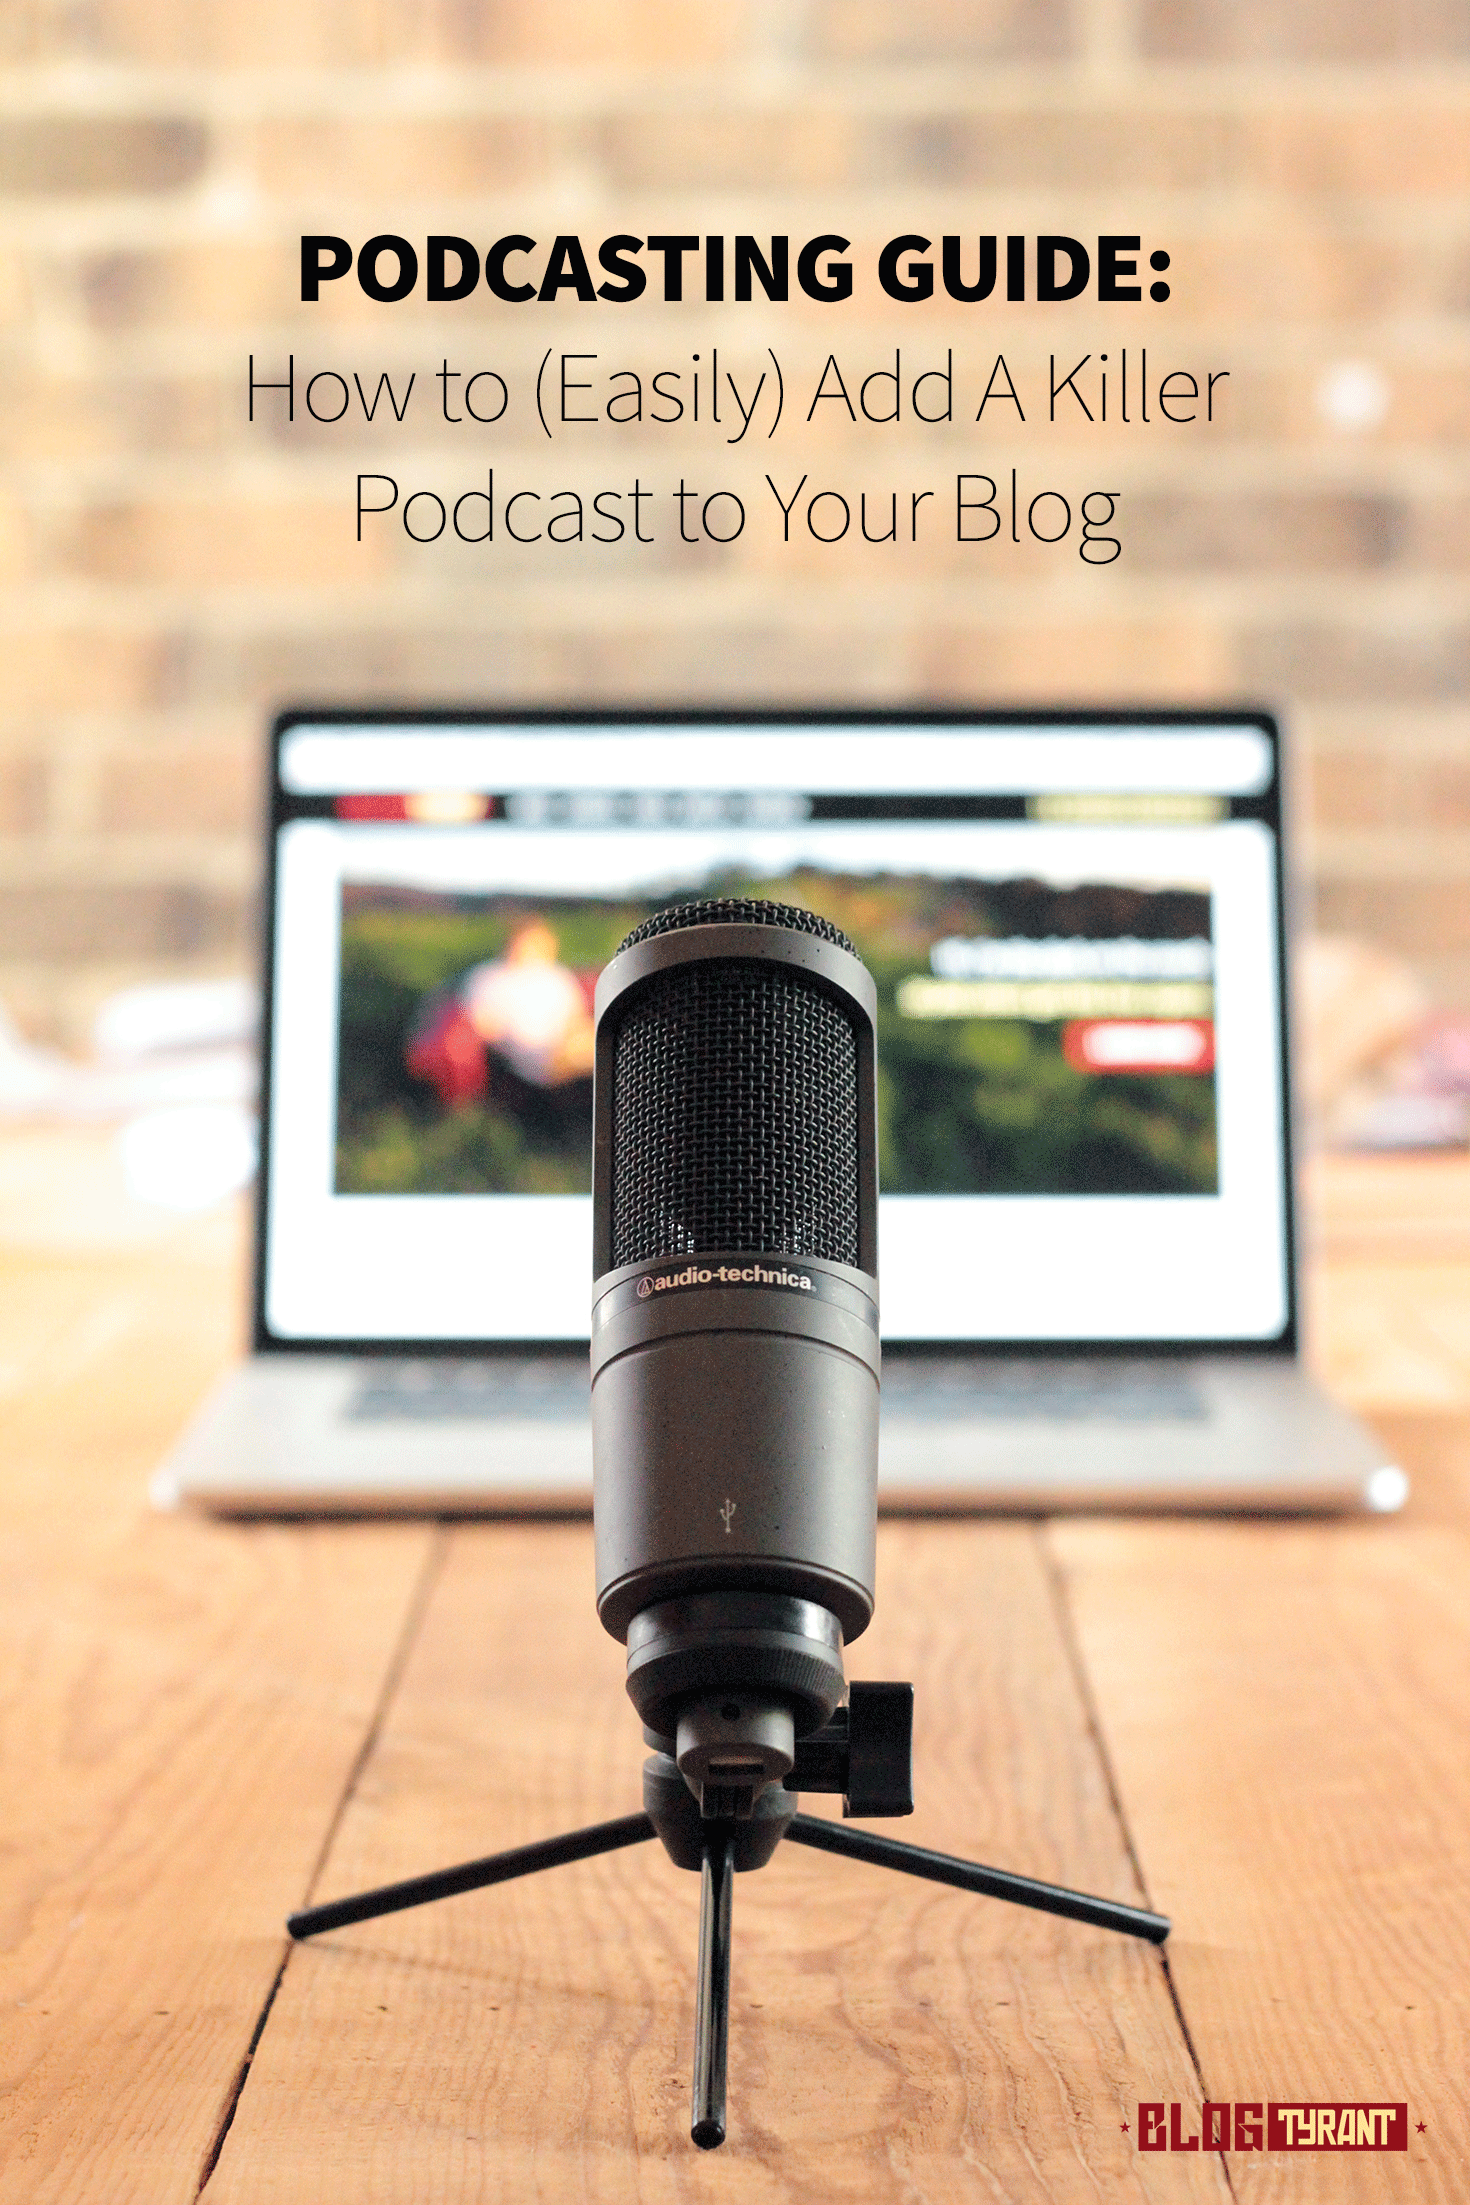 Podcasting Guide: How to Add a Killer Podcast to Your Blog